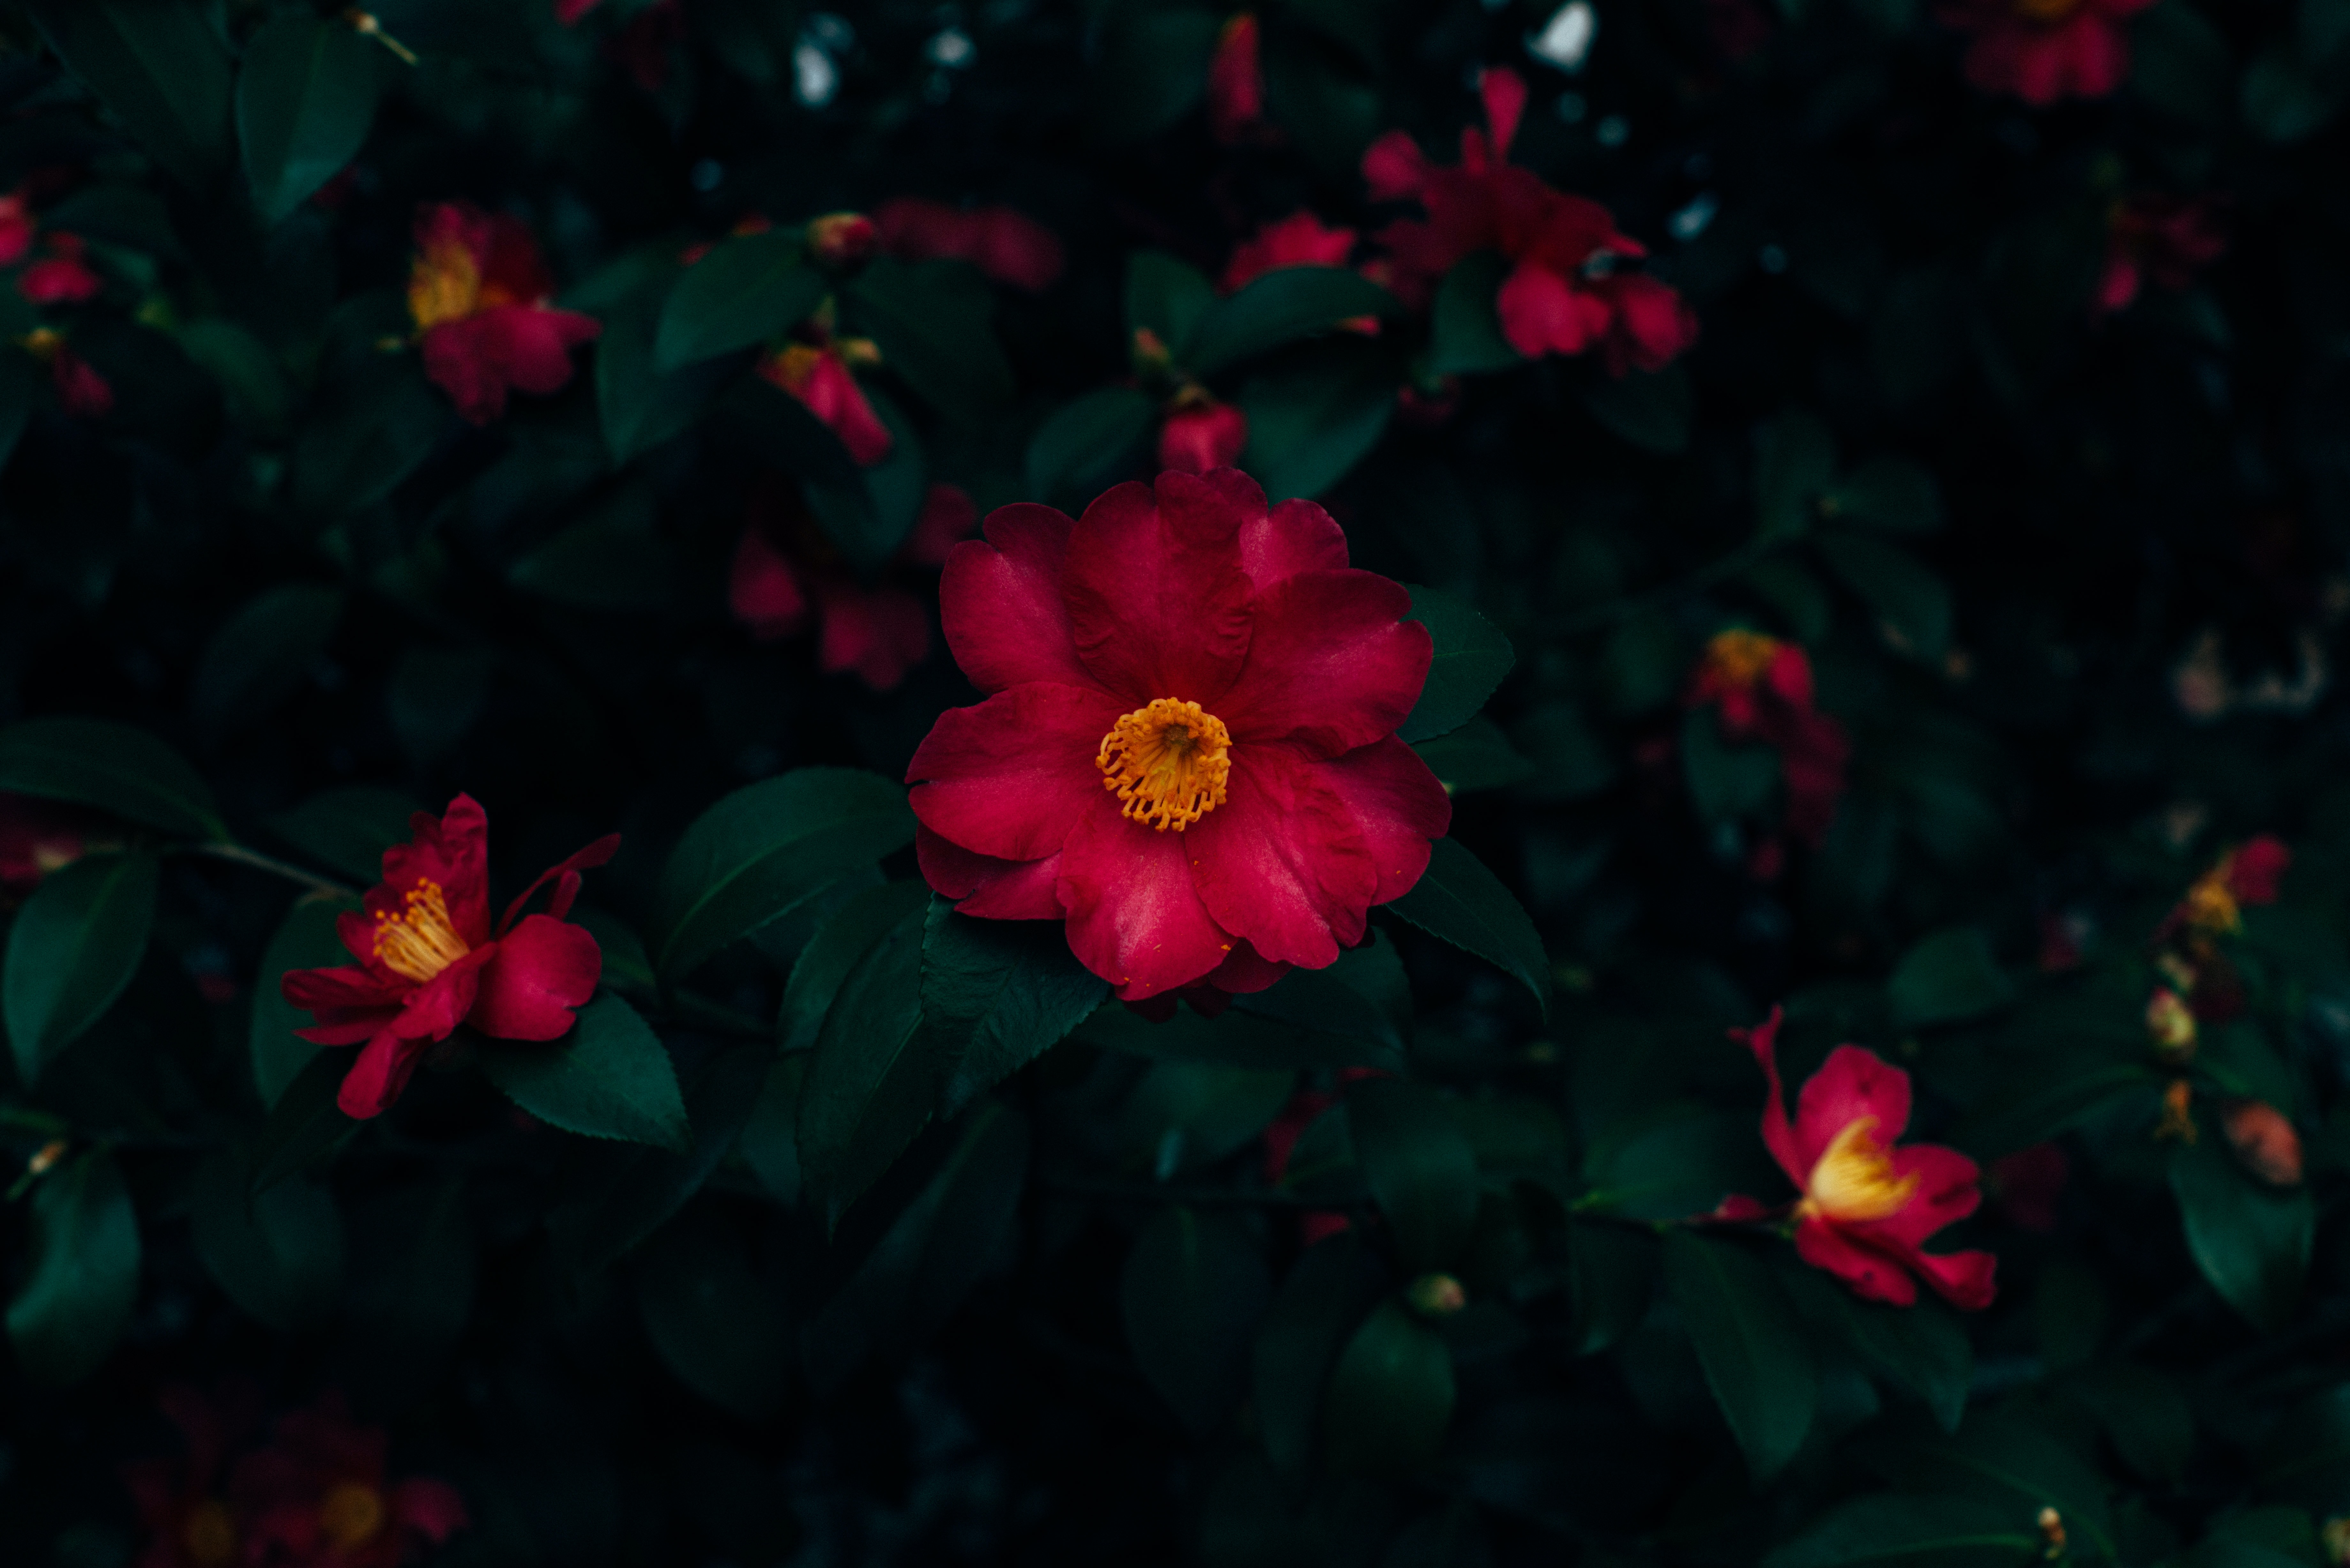 red-petaled flower bloom close-up photo